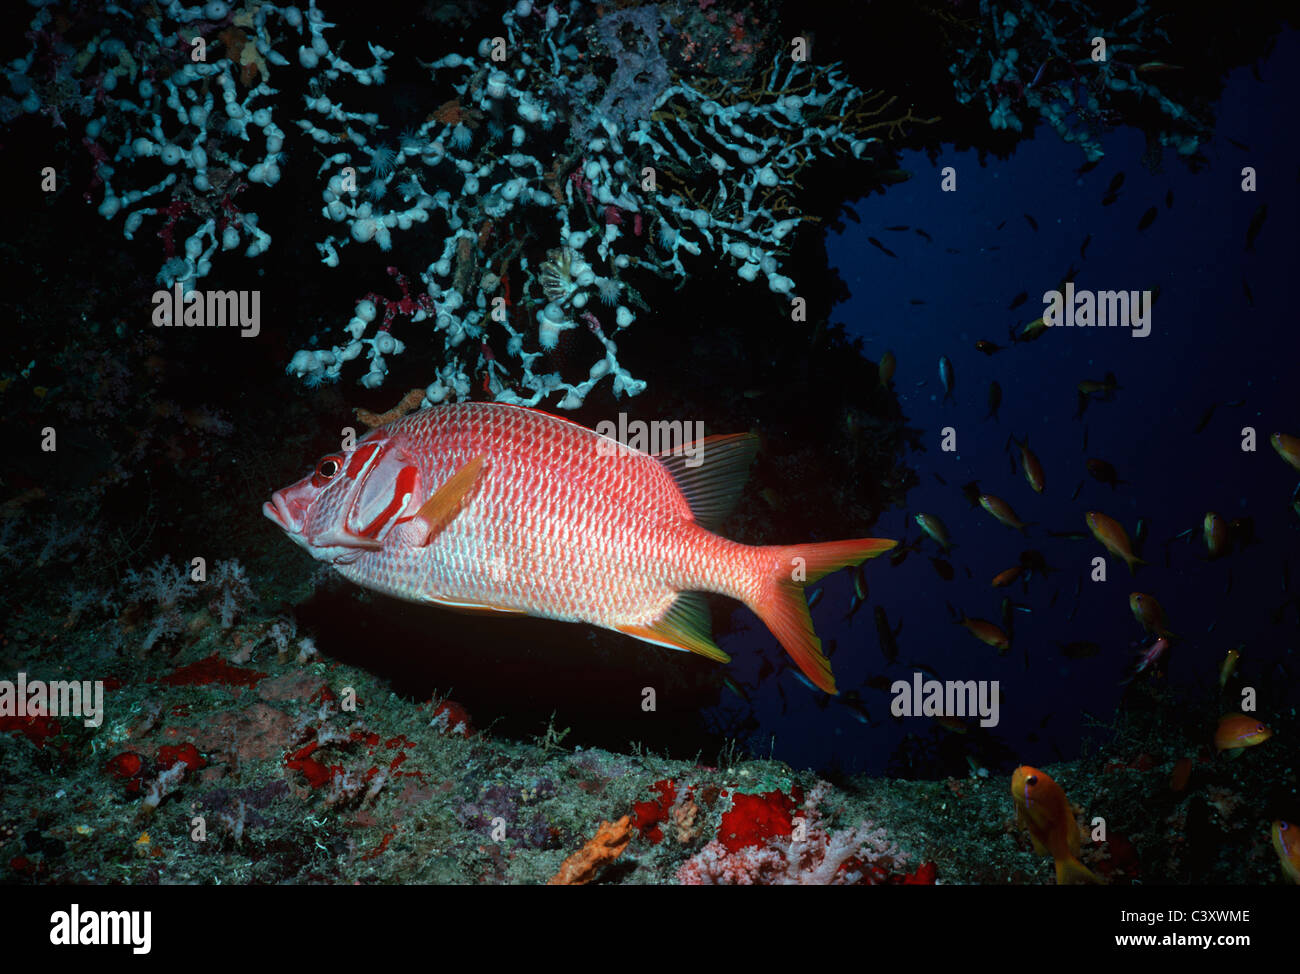 A squirrelfish (Holocentridae) swims amid smaller gold colored fish anthias (Anthiinae) at the mouth of a cave in - Stock Image